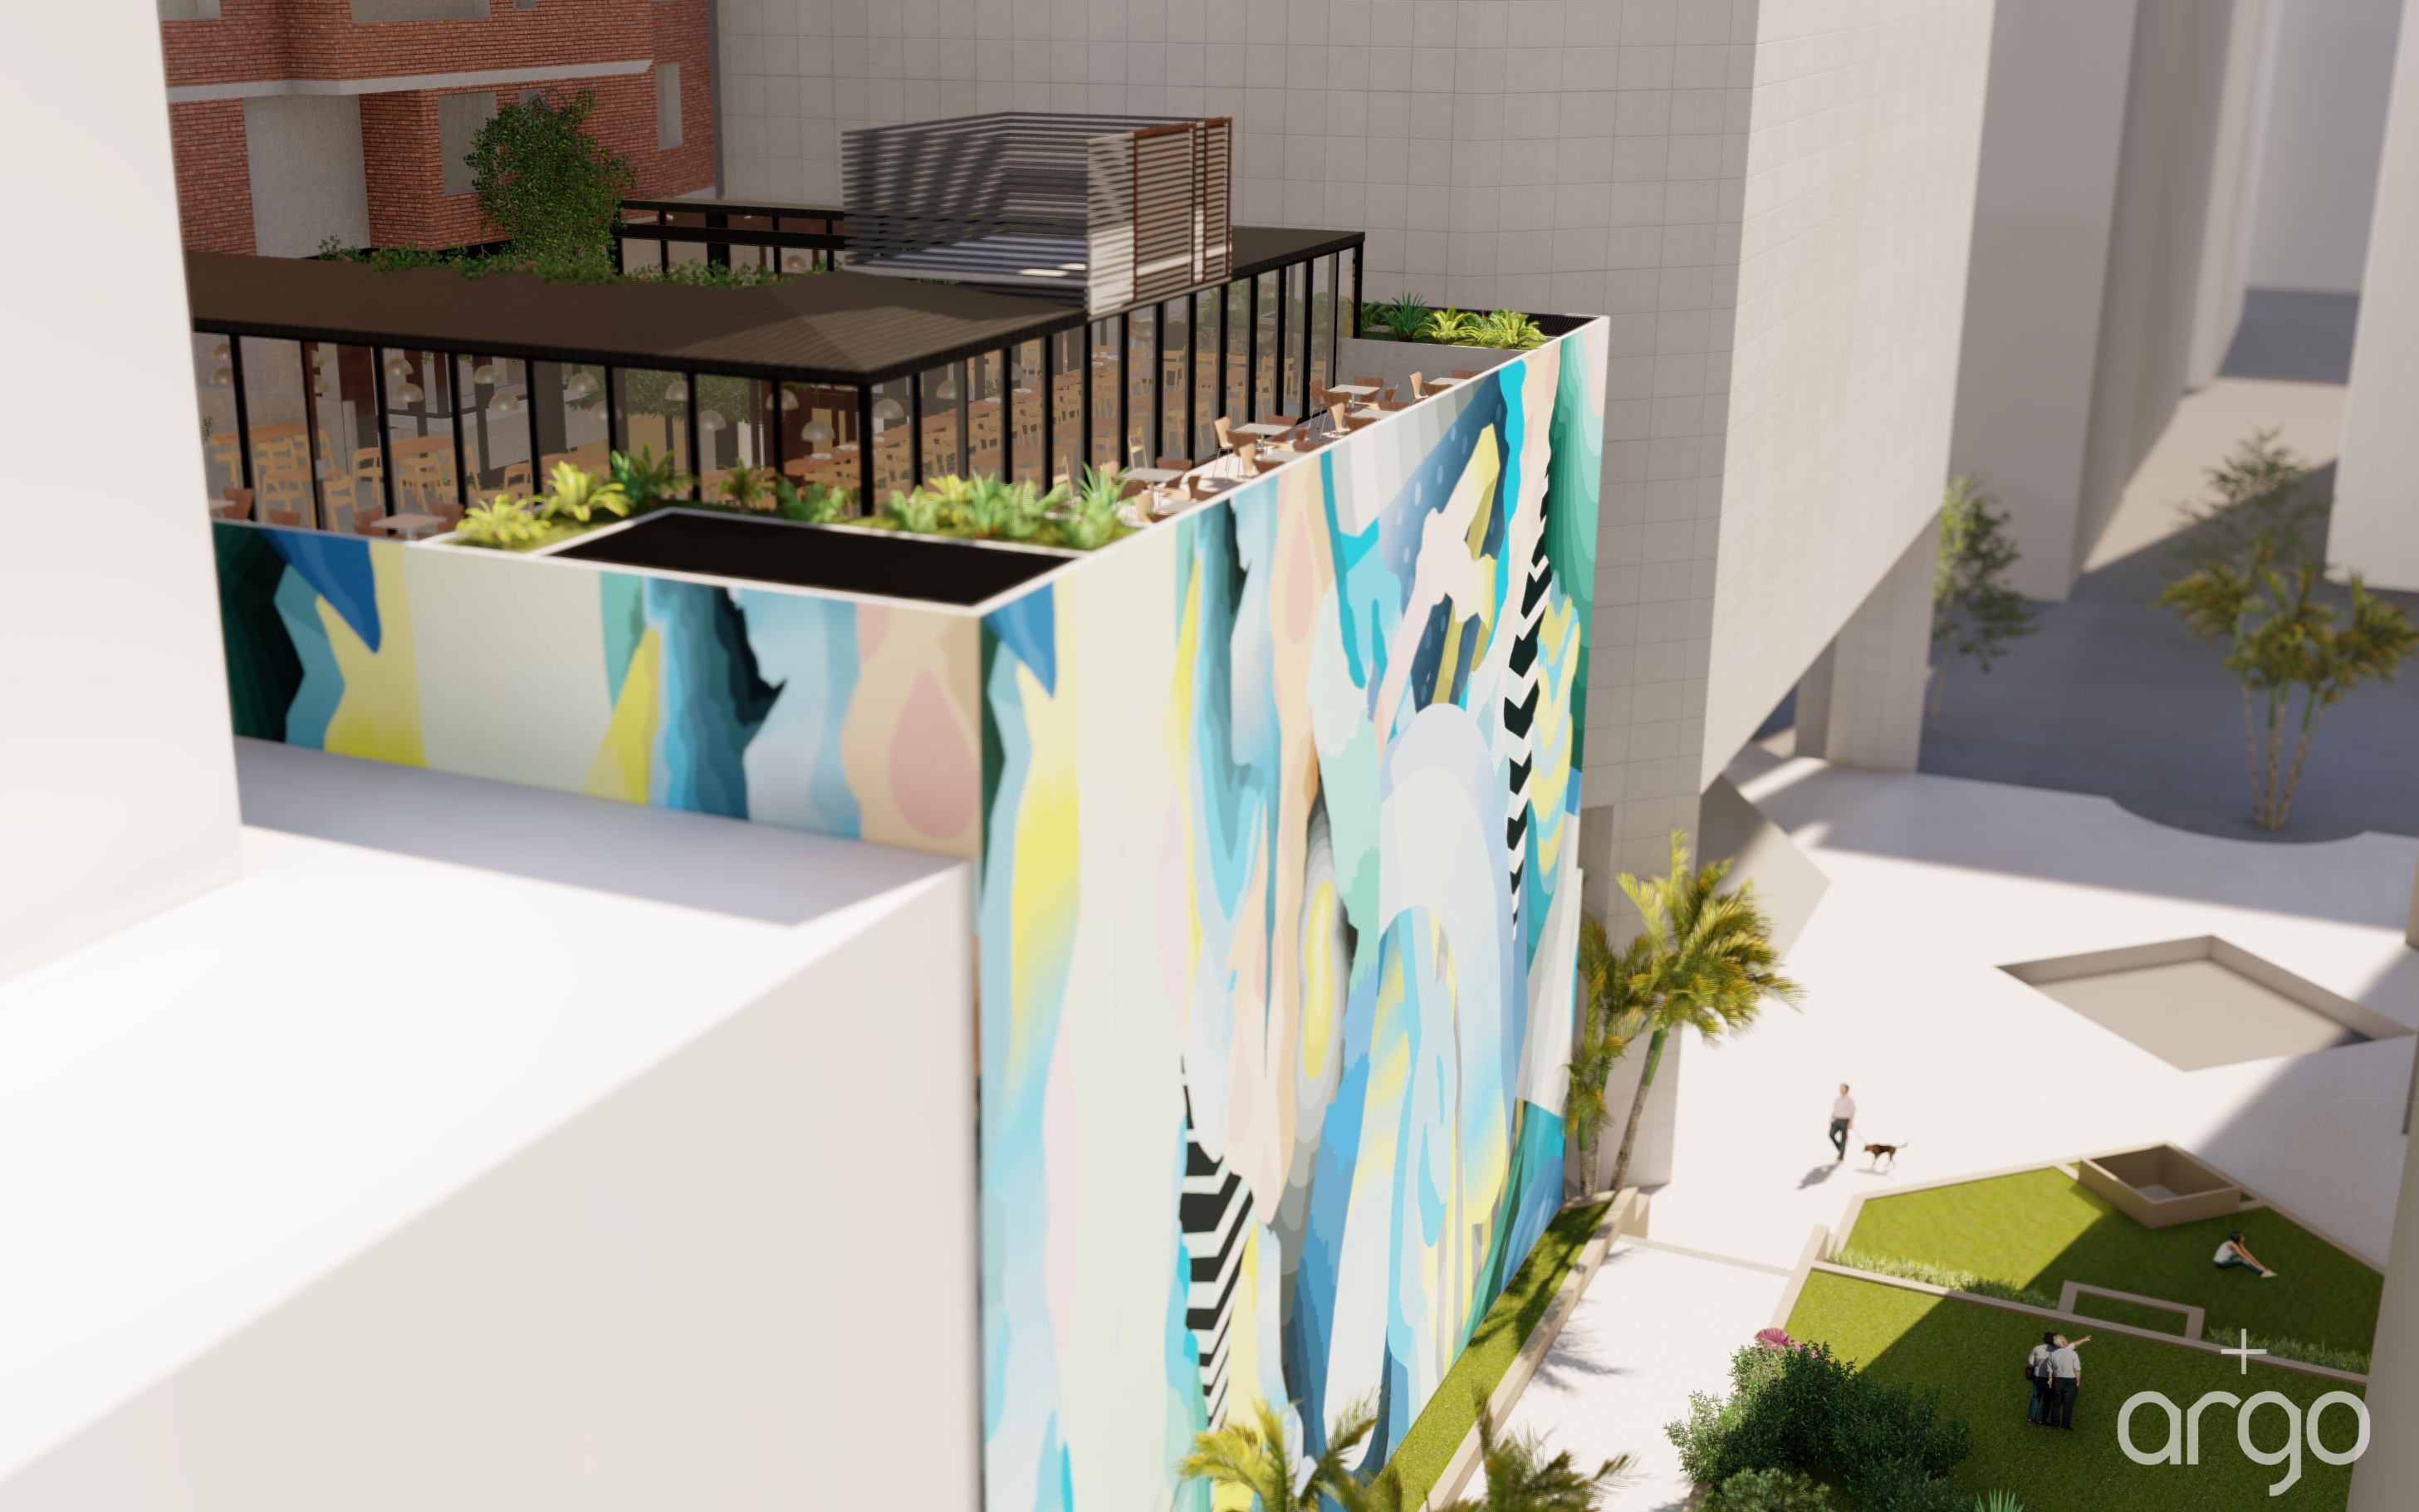 Local Brisbane artist Leans will create an art installation on the rear and side boundary walls.